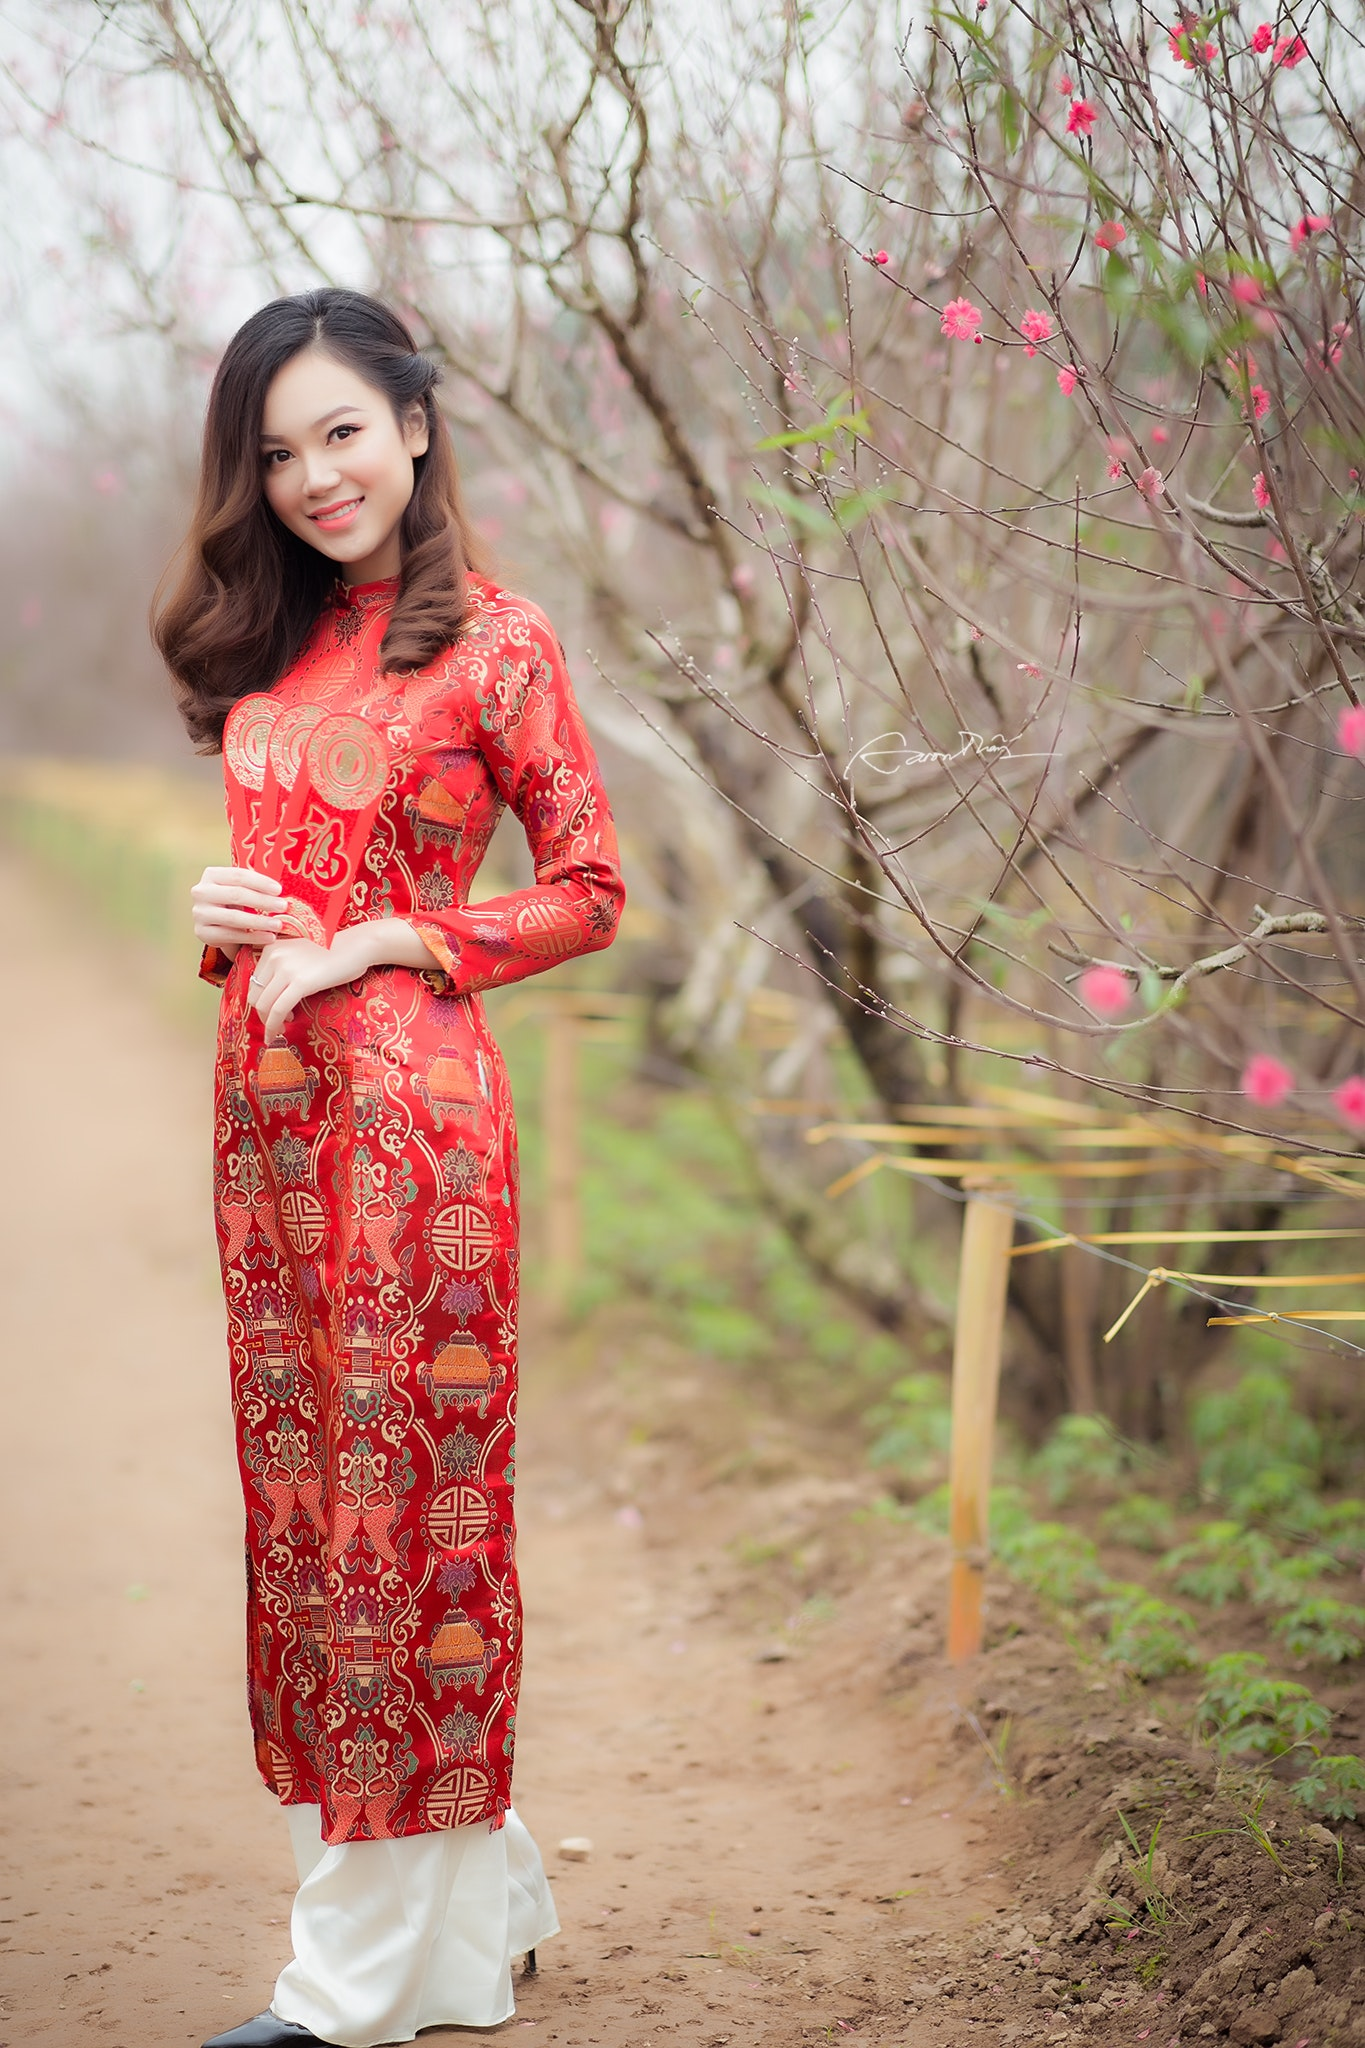 Woman in Red Crew-neck Long-sleeved Dress Near Bare Tree, Adult, Outdoors, Woman, Tree, HQ Photo